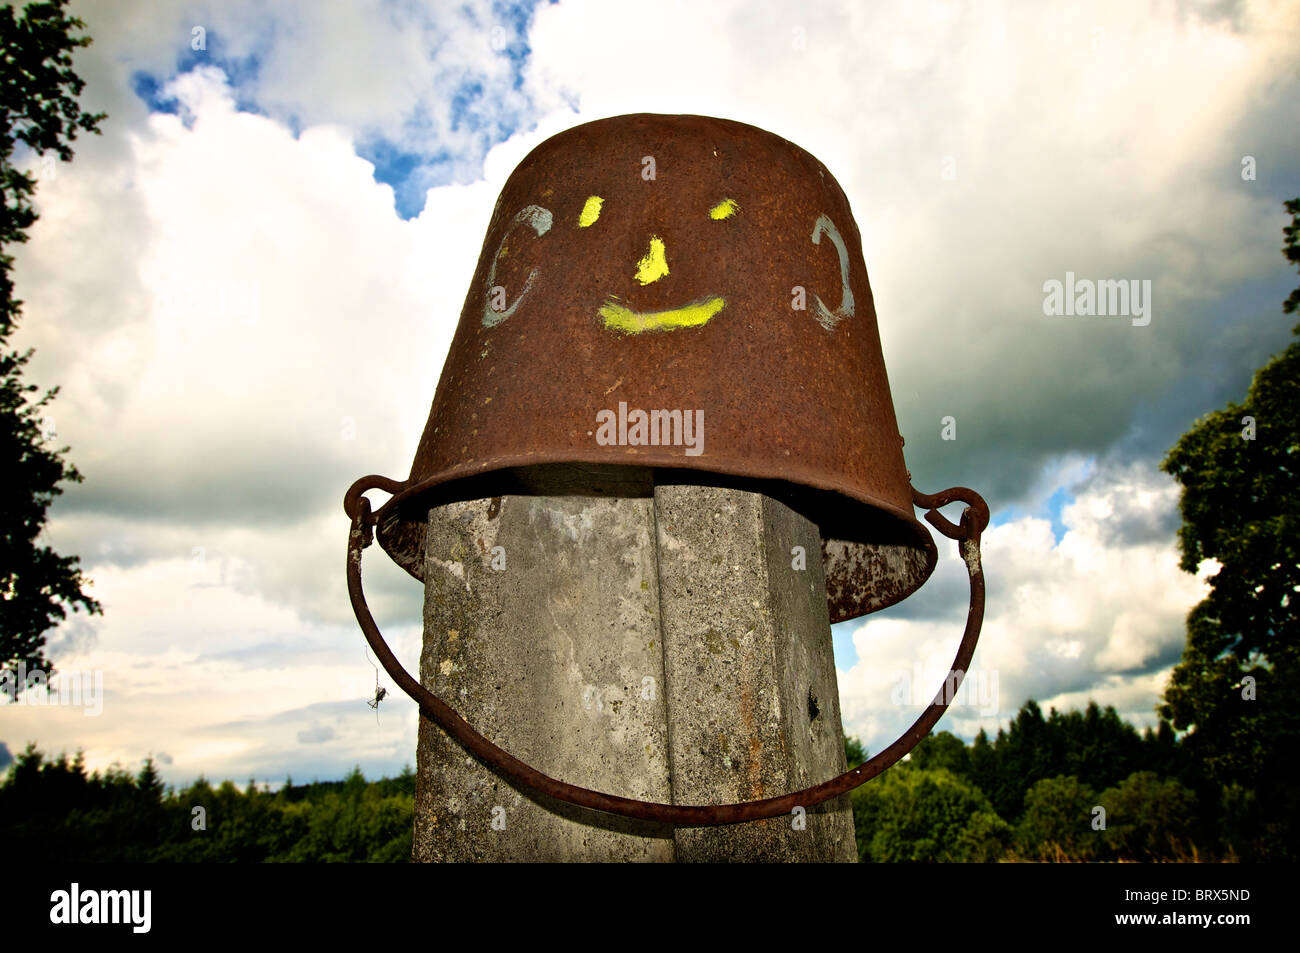 Upended bucket with smiley face. - Stock Image